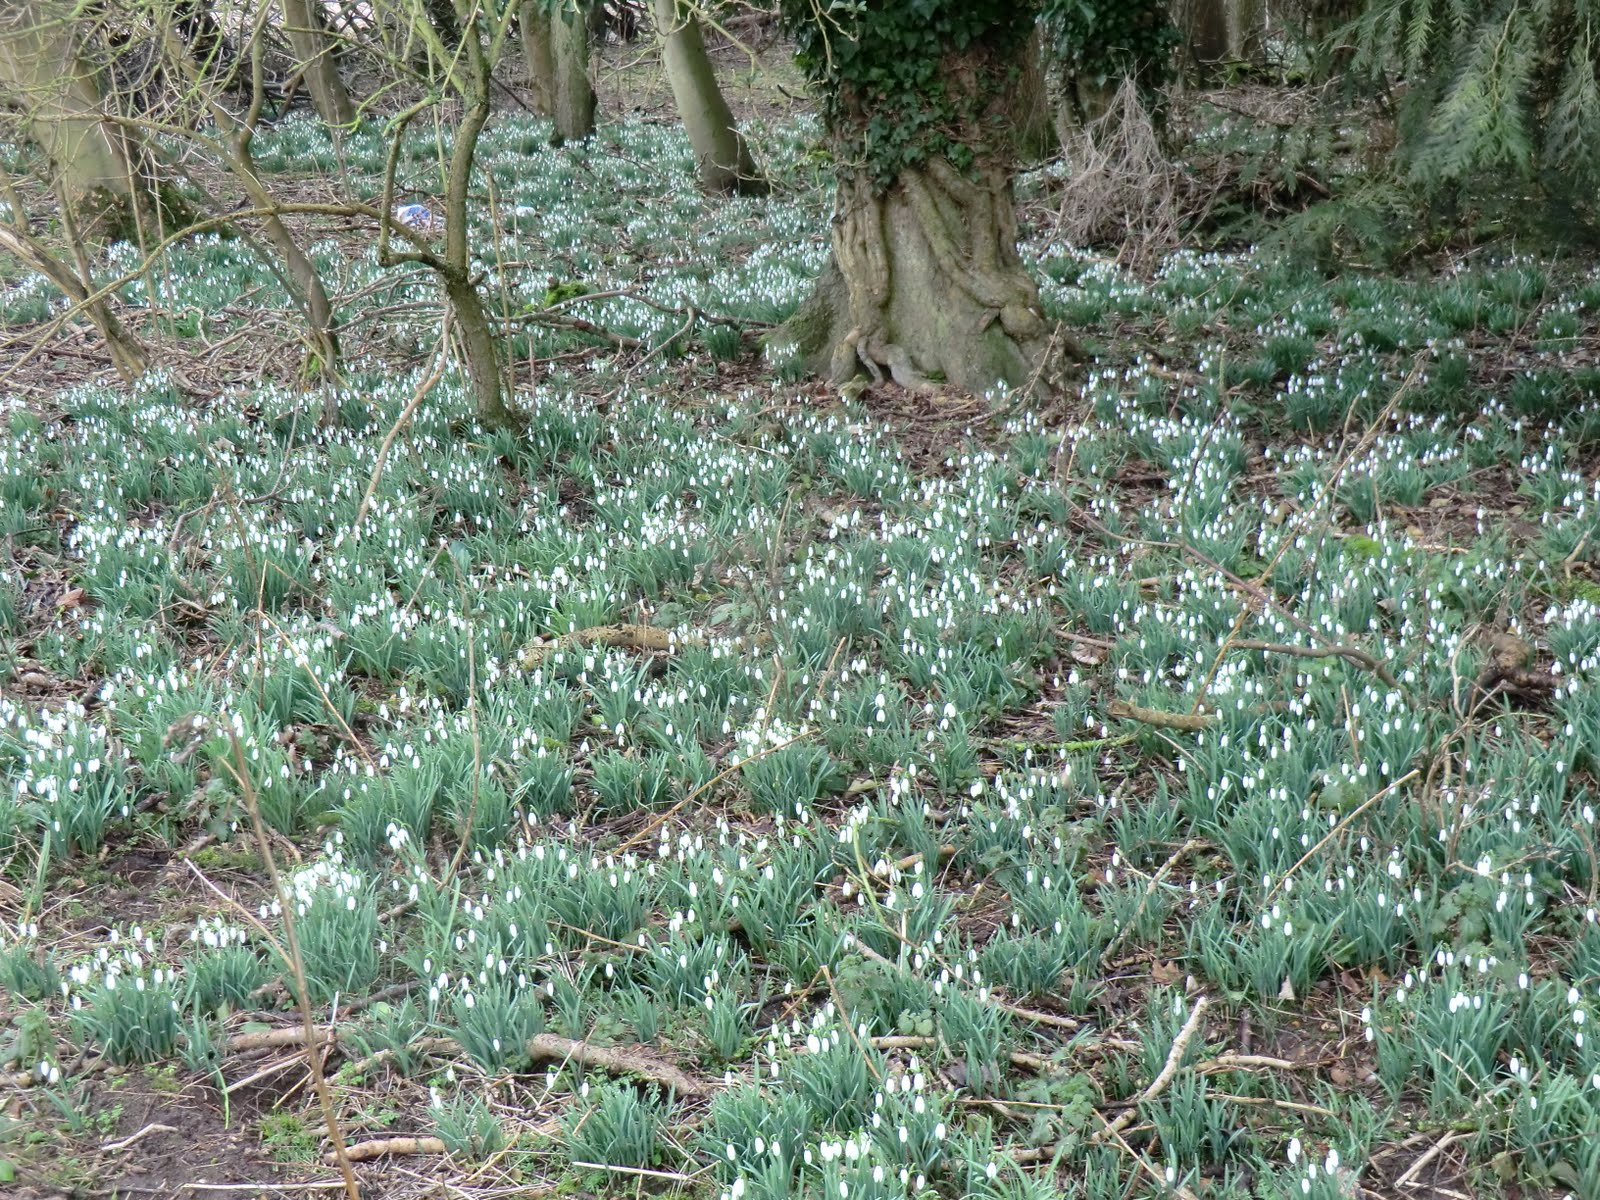 CIMG6693 Masses of snowdrops in the woods above Freefolk